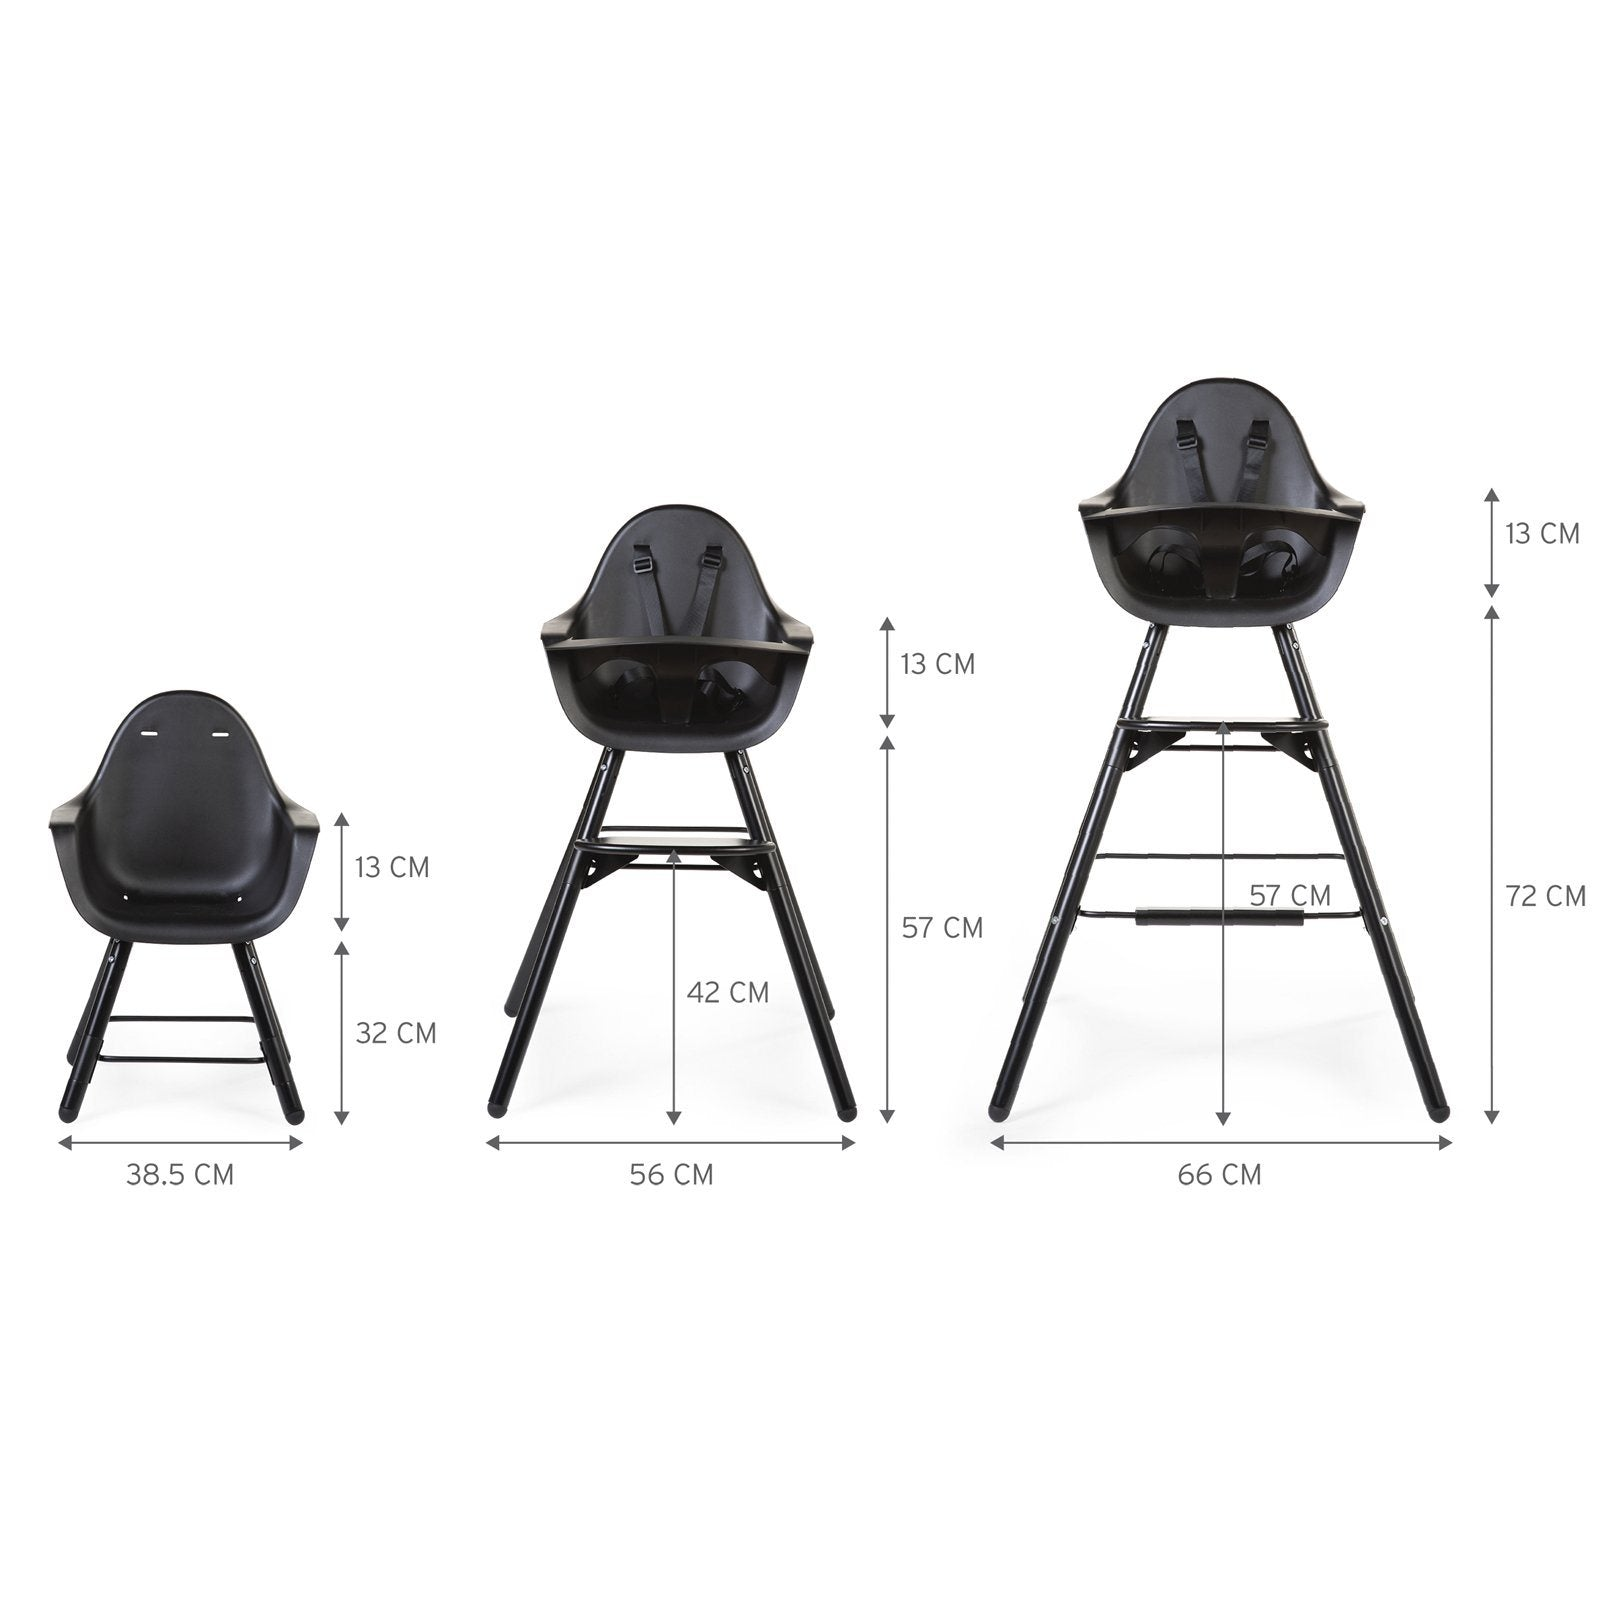 Evolu 2 Highchair - Black Childhome